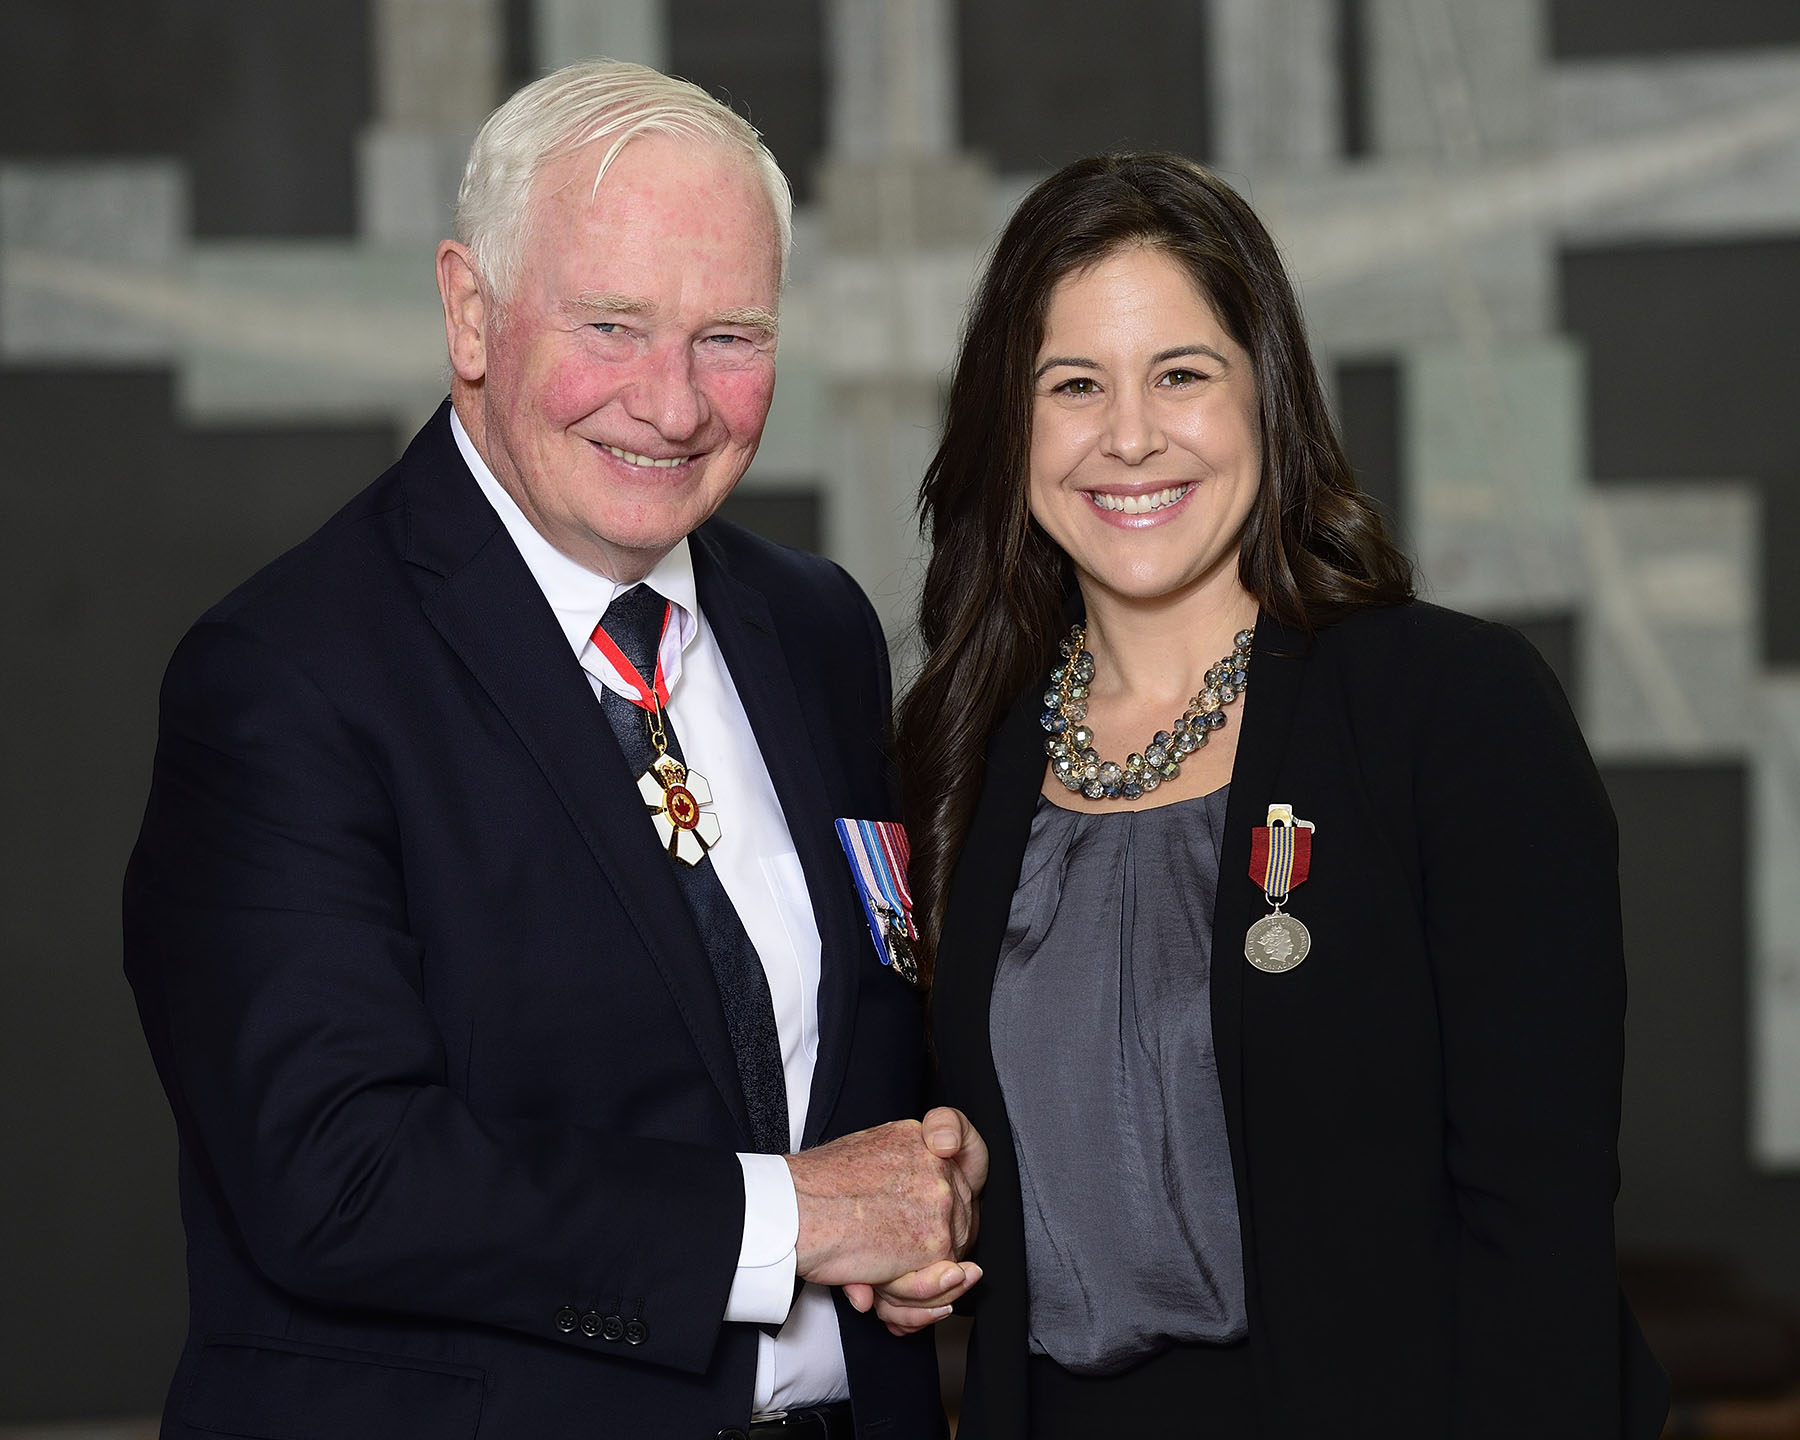 Mélanie Monique McGrath received the Sovereign's Medal for Volunteers for her many volunteer roles, including as president of the Jeux de l'Acadie. She has always been an outstanding spokesperson and has established ties between the games and other Francophone organizations to benefit all Acadian youth.